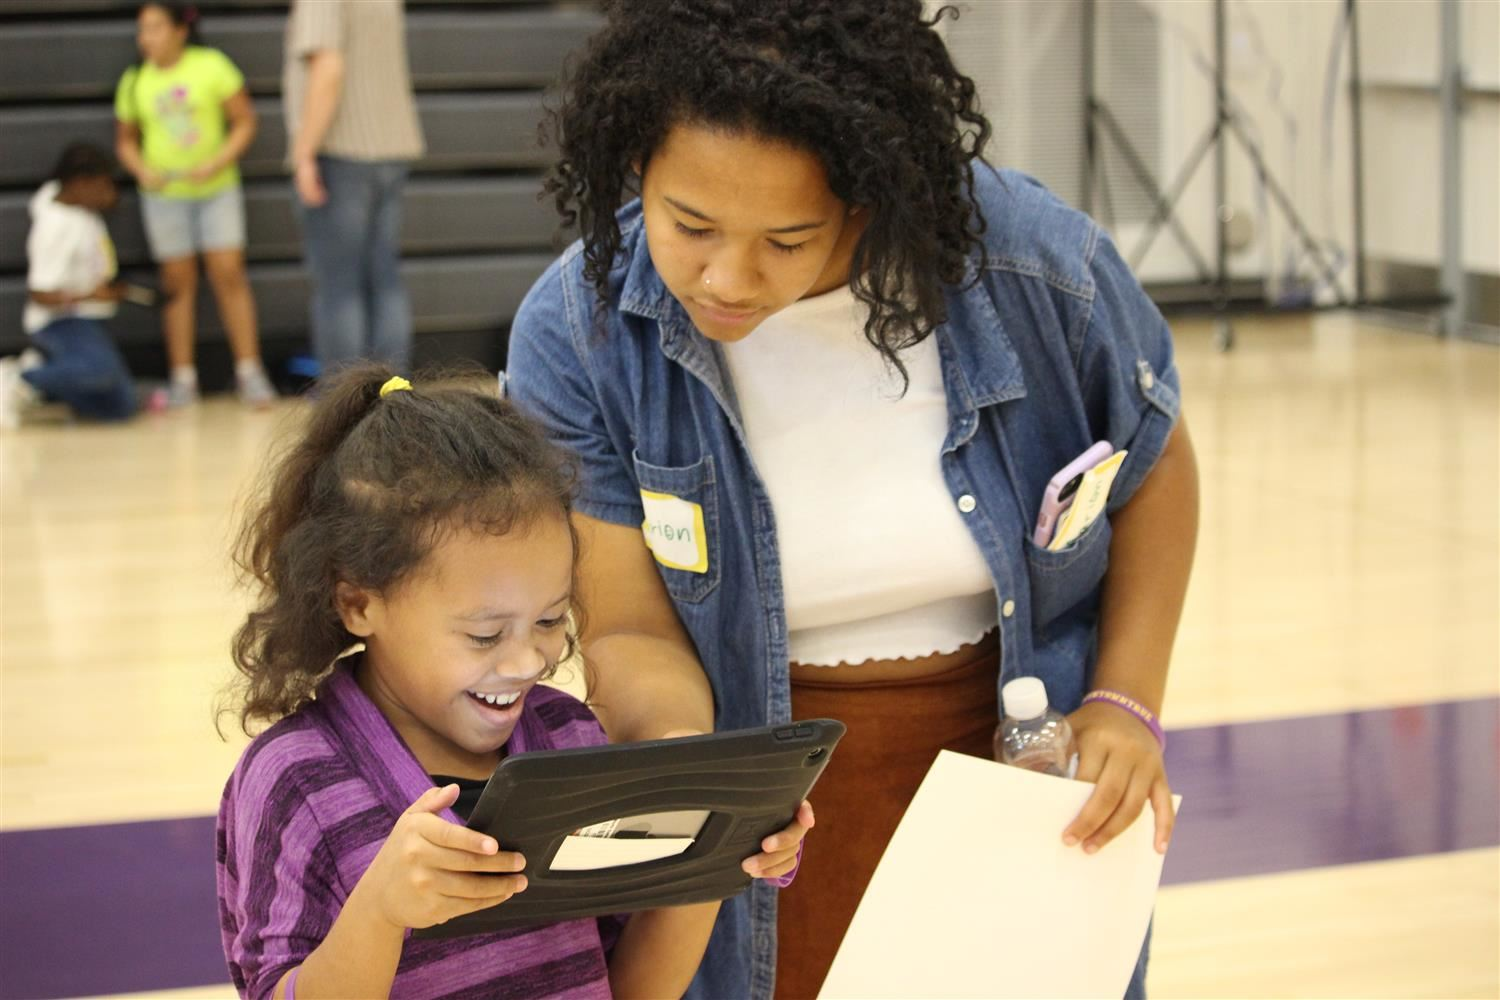 NKCHS student helping Crestview student with iPad